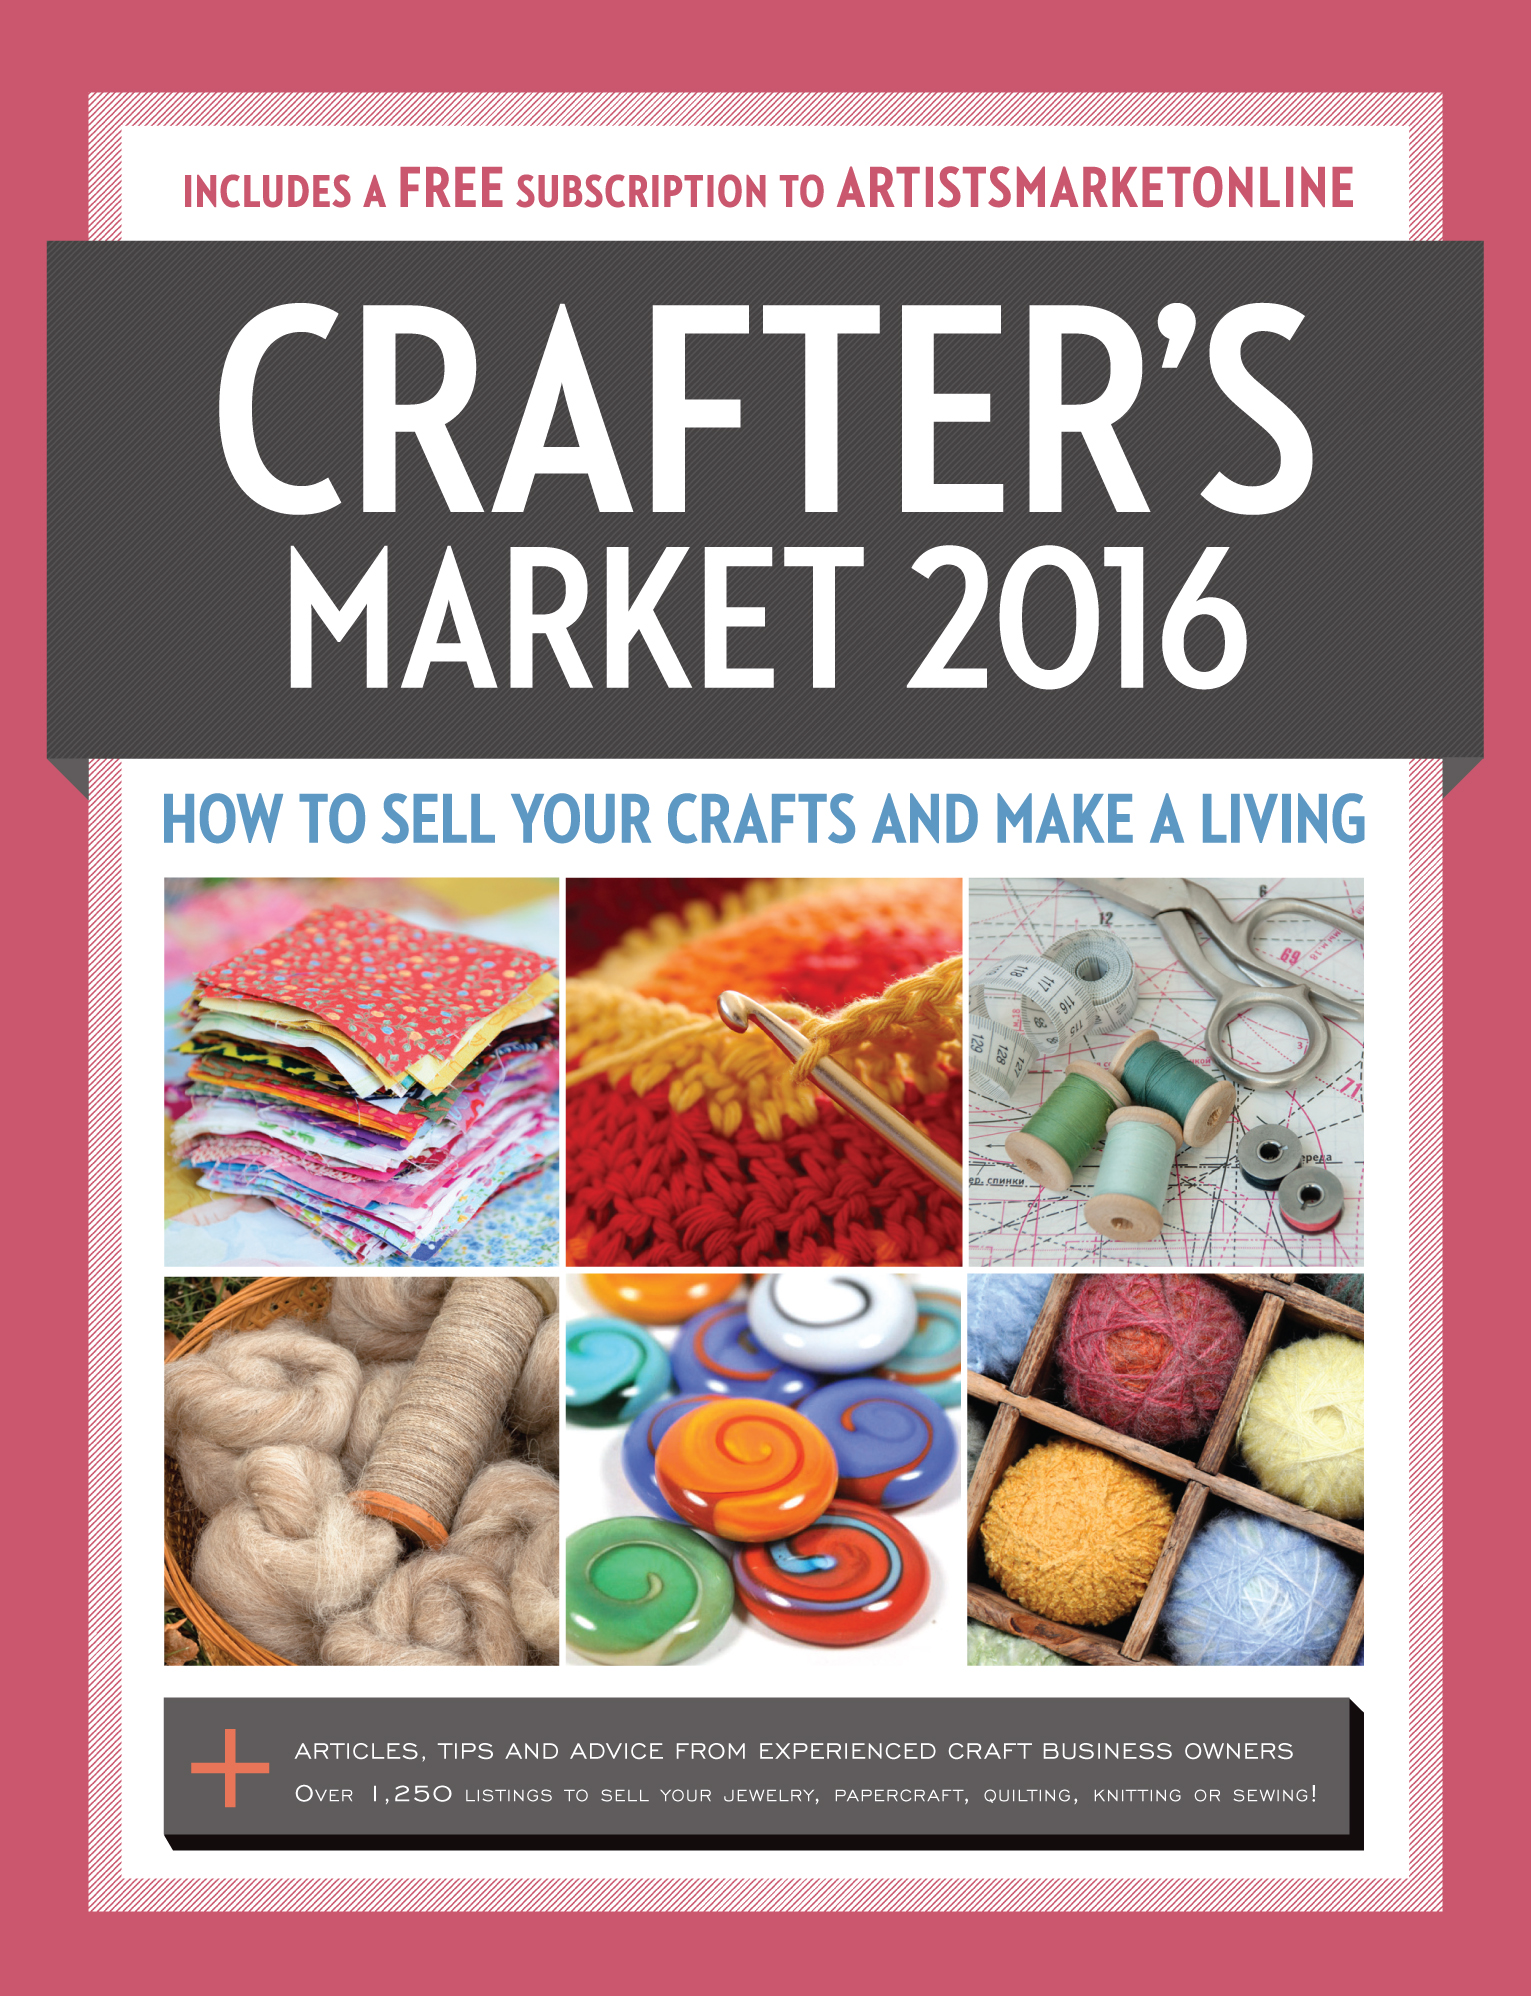 Crafter's Market 2016 edited by Kerry Bogert - Book Review | www.thestitchinmommy.com